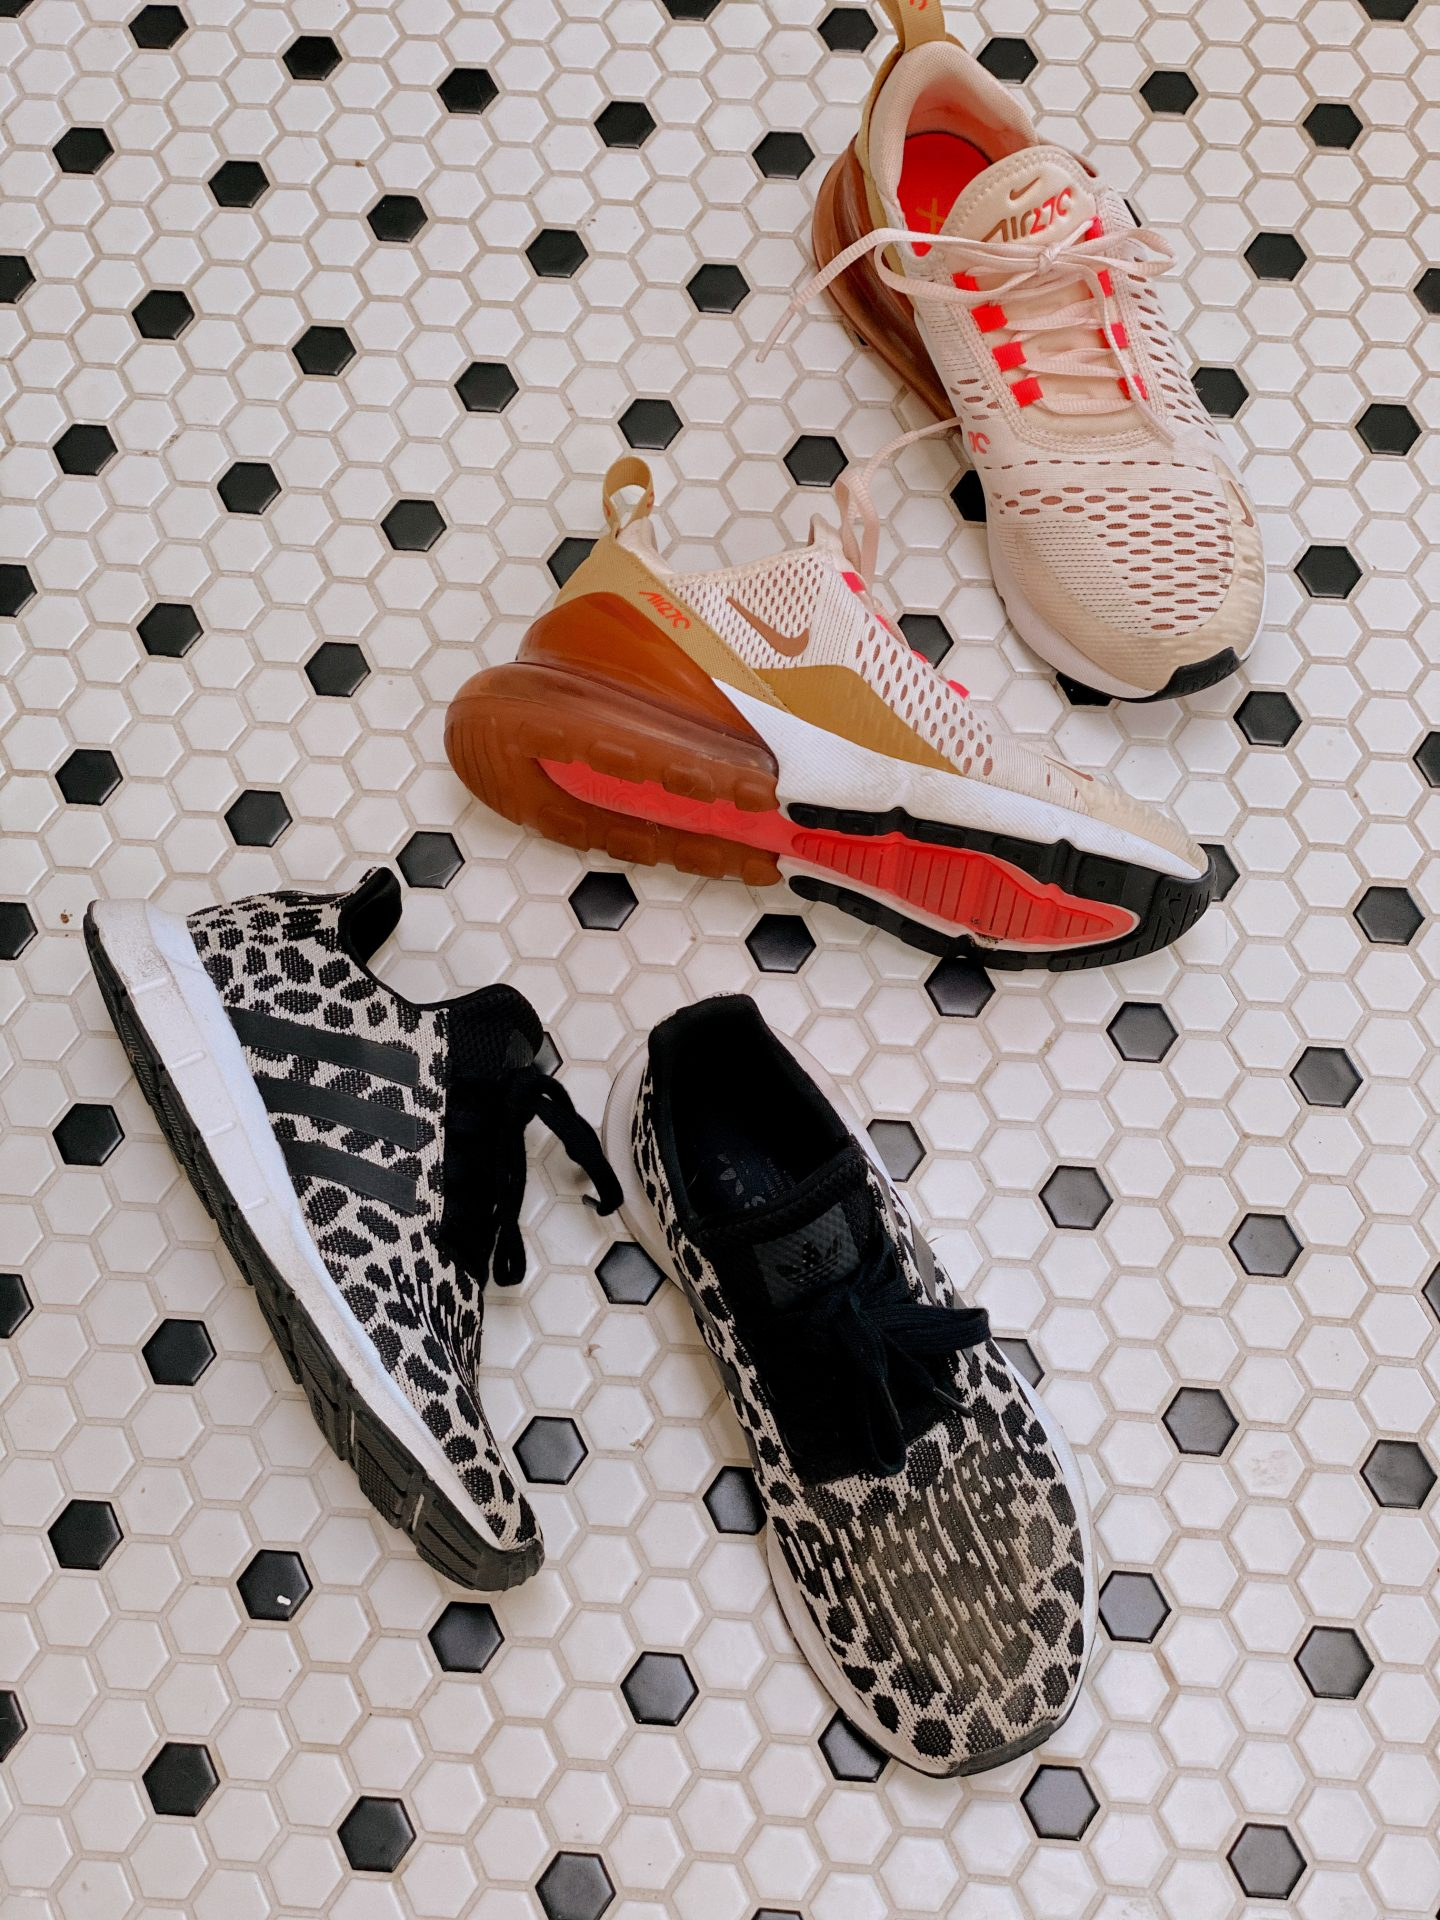 Nordstrom Anniversary Sale by popular San Diego fashion blog, Navy Grace: image of Nordstrom Swift Run Sneaker ADIDAS and Nordstrom Nike Air70 sneakers.